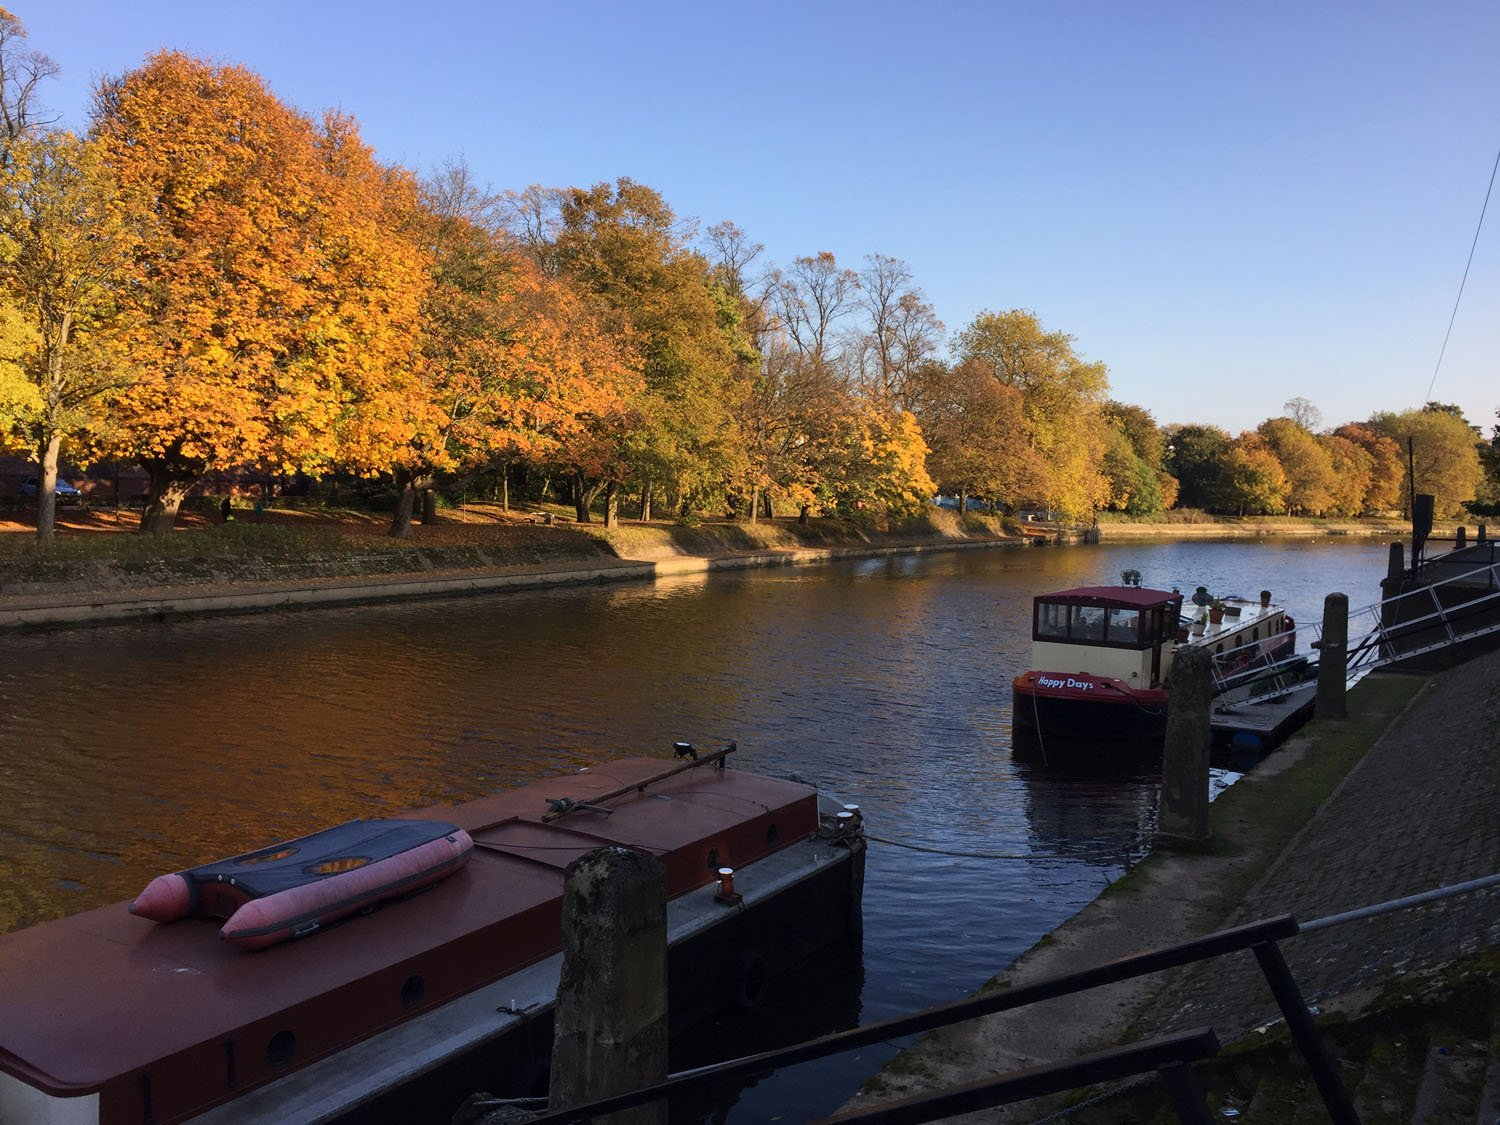 Autumn Colours - House boats on the River Ouse - York